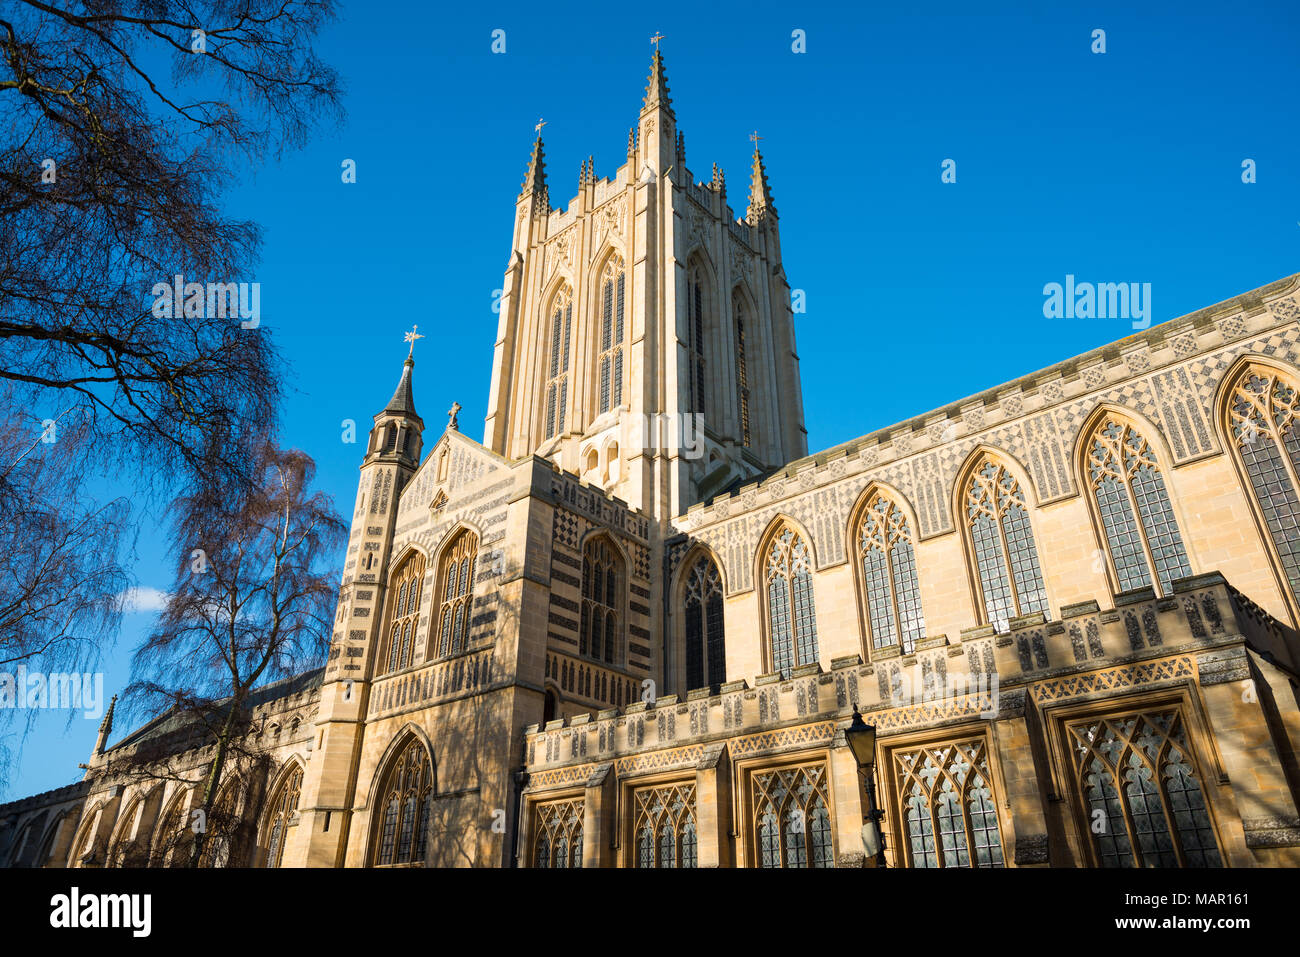 St. Edmundsbury Cathedral, the cathedral for the Church of England's Diocese of St. Edmundsbury and Ipswich, Bury St. Edmunds, Suffolk, England, Unite - Stock Image